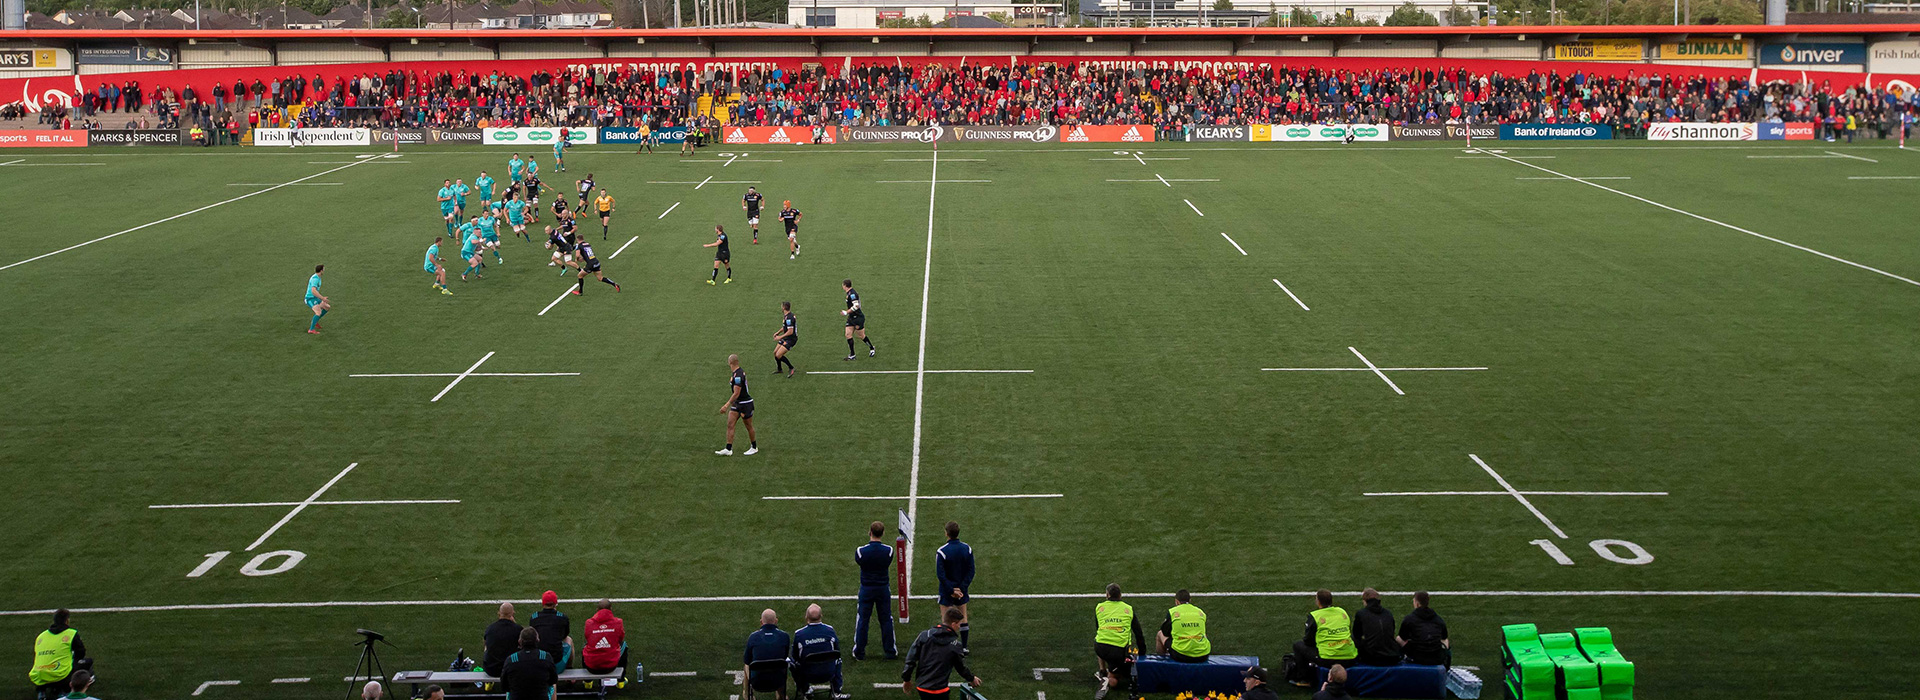 Munster-Rugby-artificial-grass-munufacturer-synthetic-turf-factory